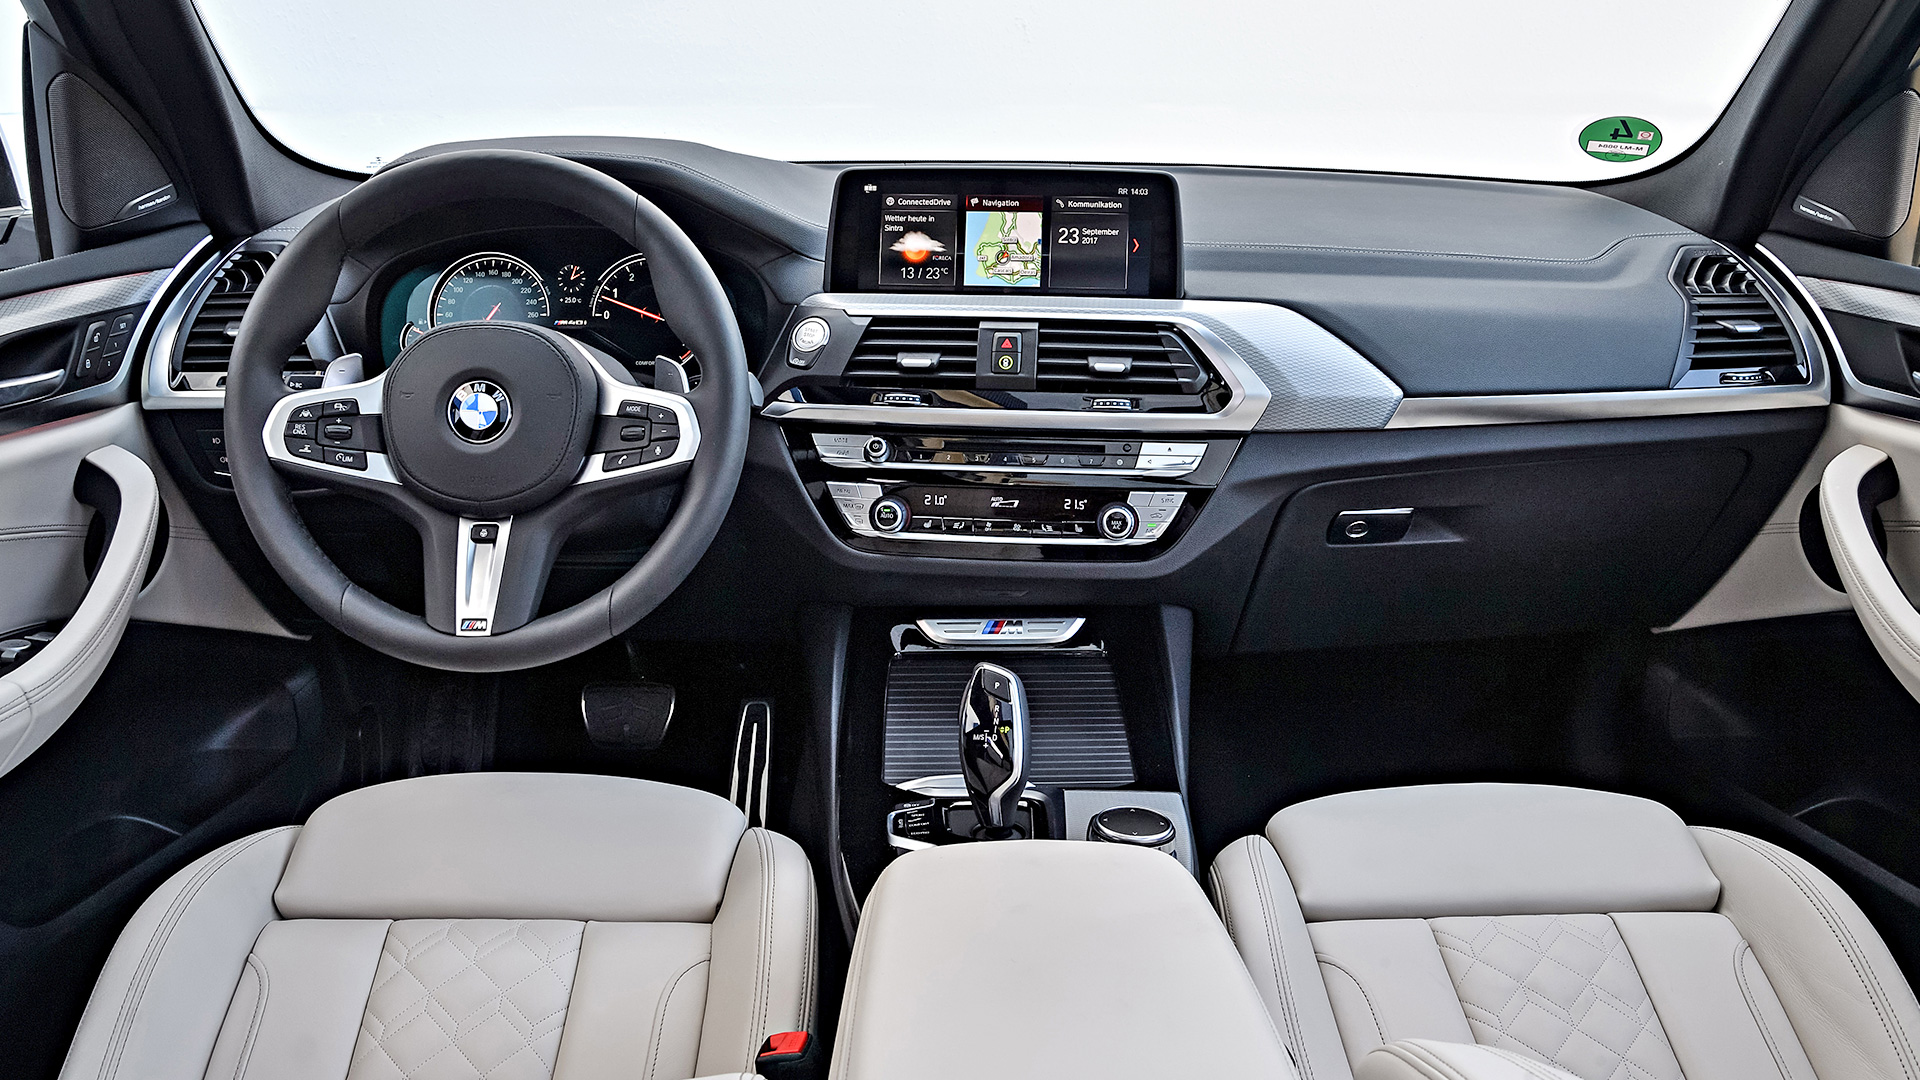 bmw x3 2018 m40i interior car photos overdrive. Black Bedroom Furniture Sets. Home Design Ideas